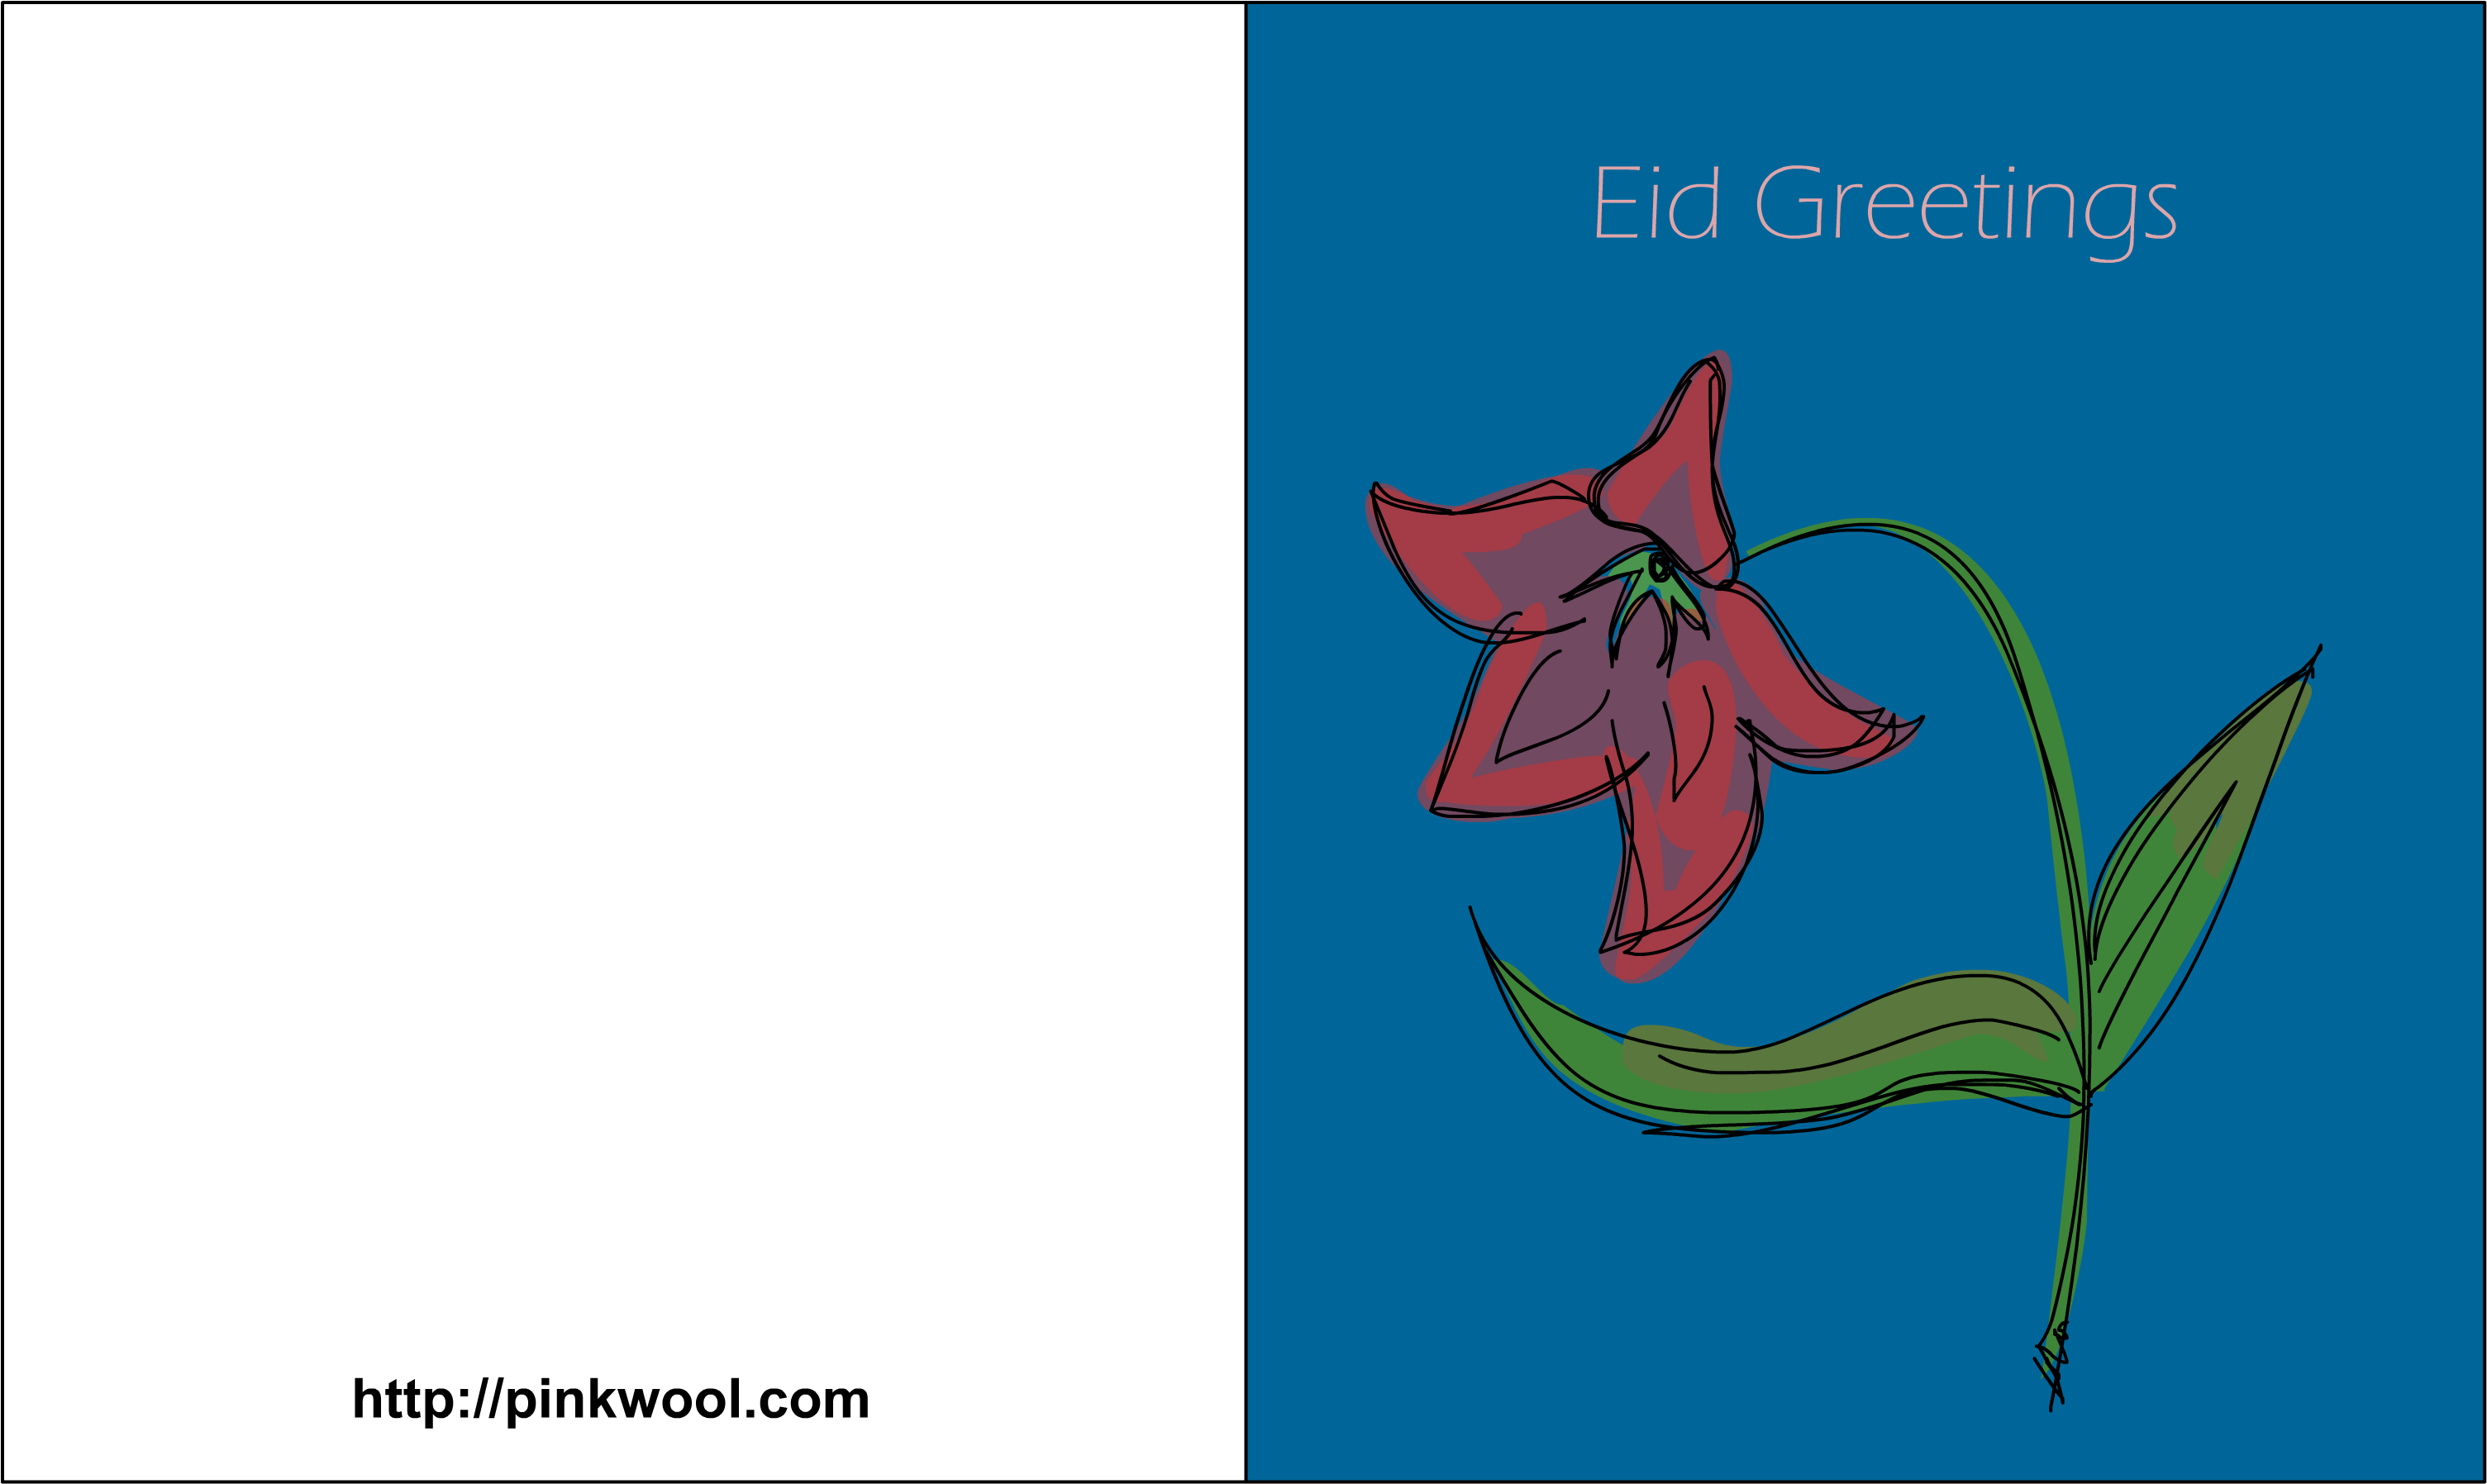 Download Free Printable Greeting Card For Eid Illustration Png Image With No Background Pngkey Com